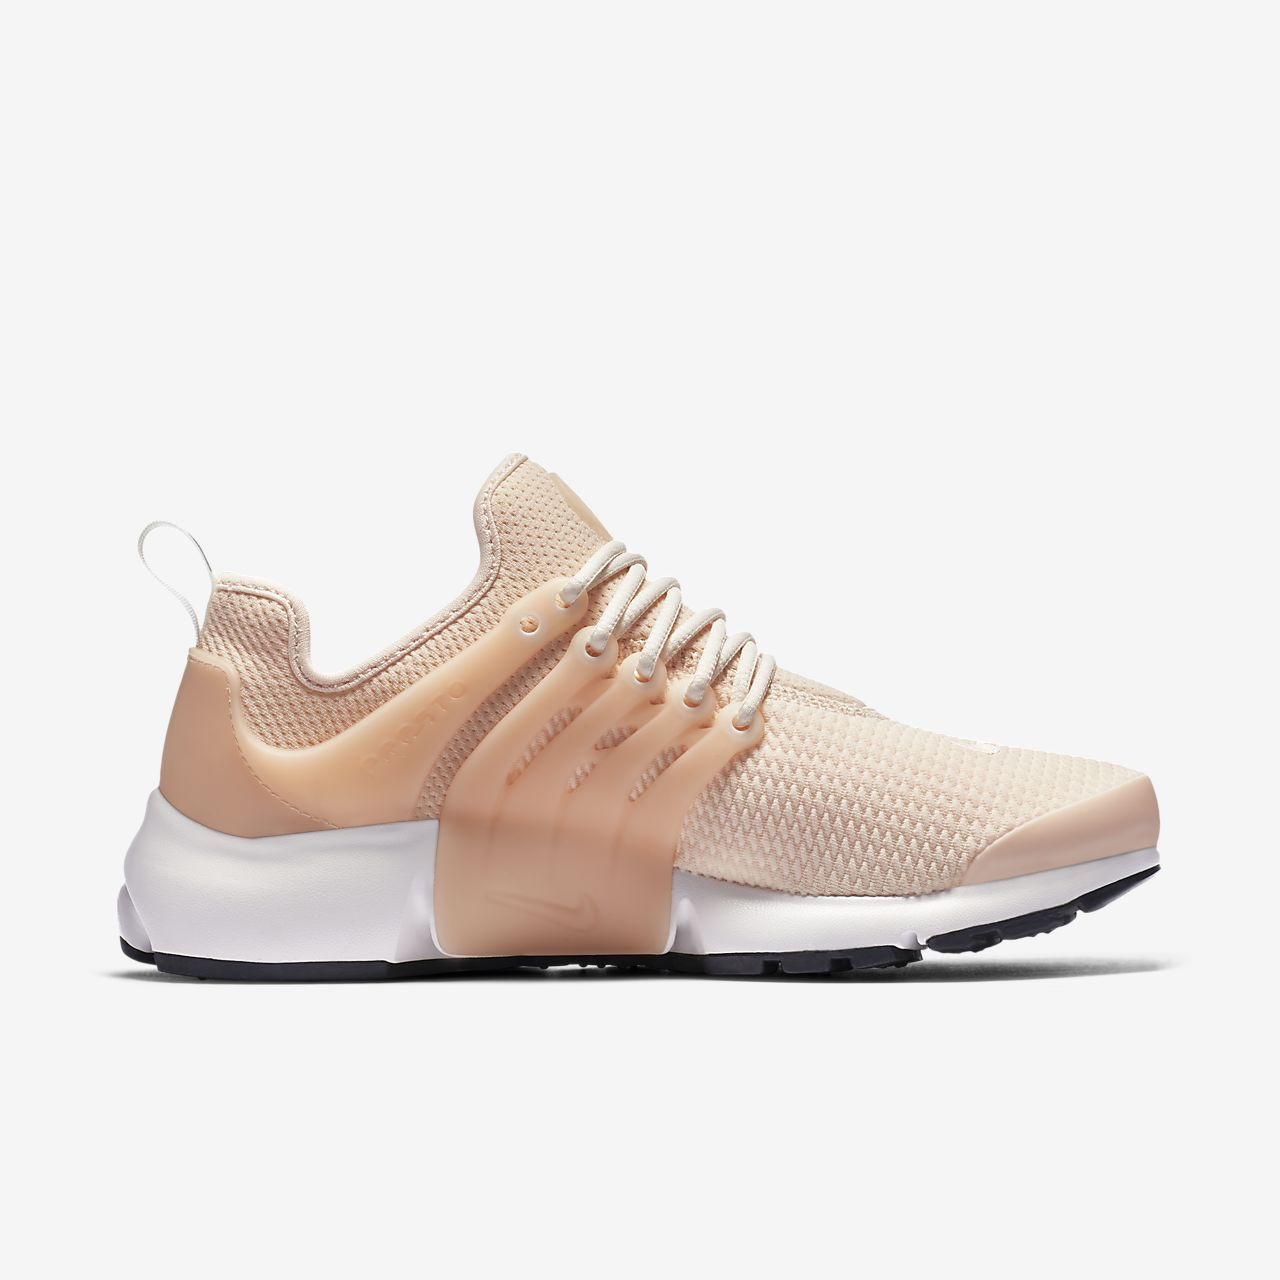 info for 0bd9e ef643 nike shoes 2018 Nike Air Presto will be available through in-store raffle  at both our Boston and Los Angeles locations. The Boston in-store raffle  starts ...